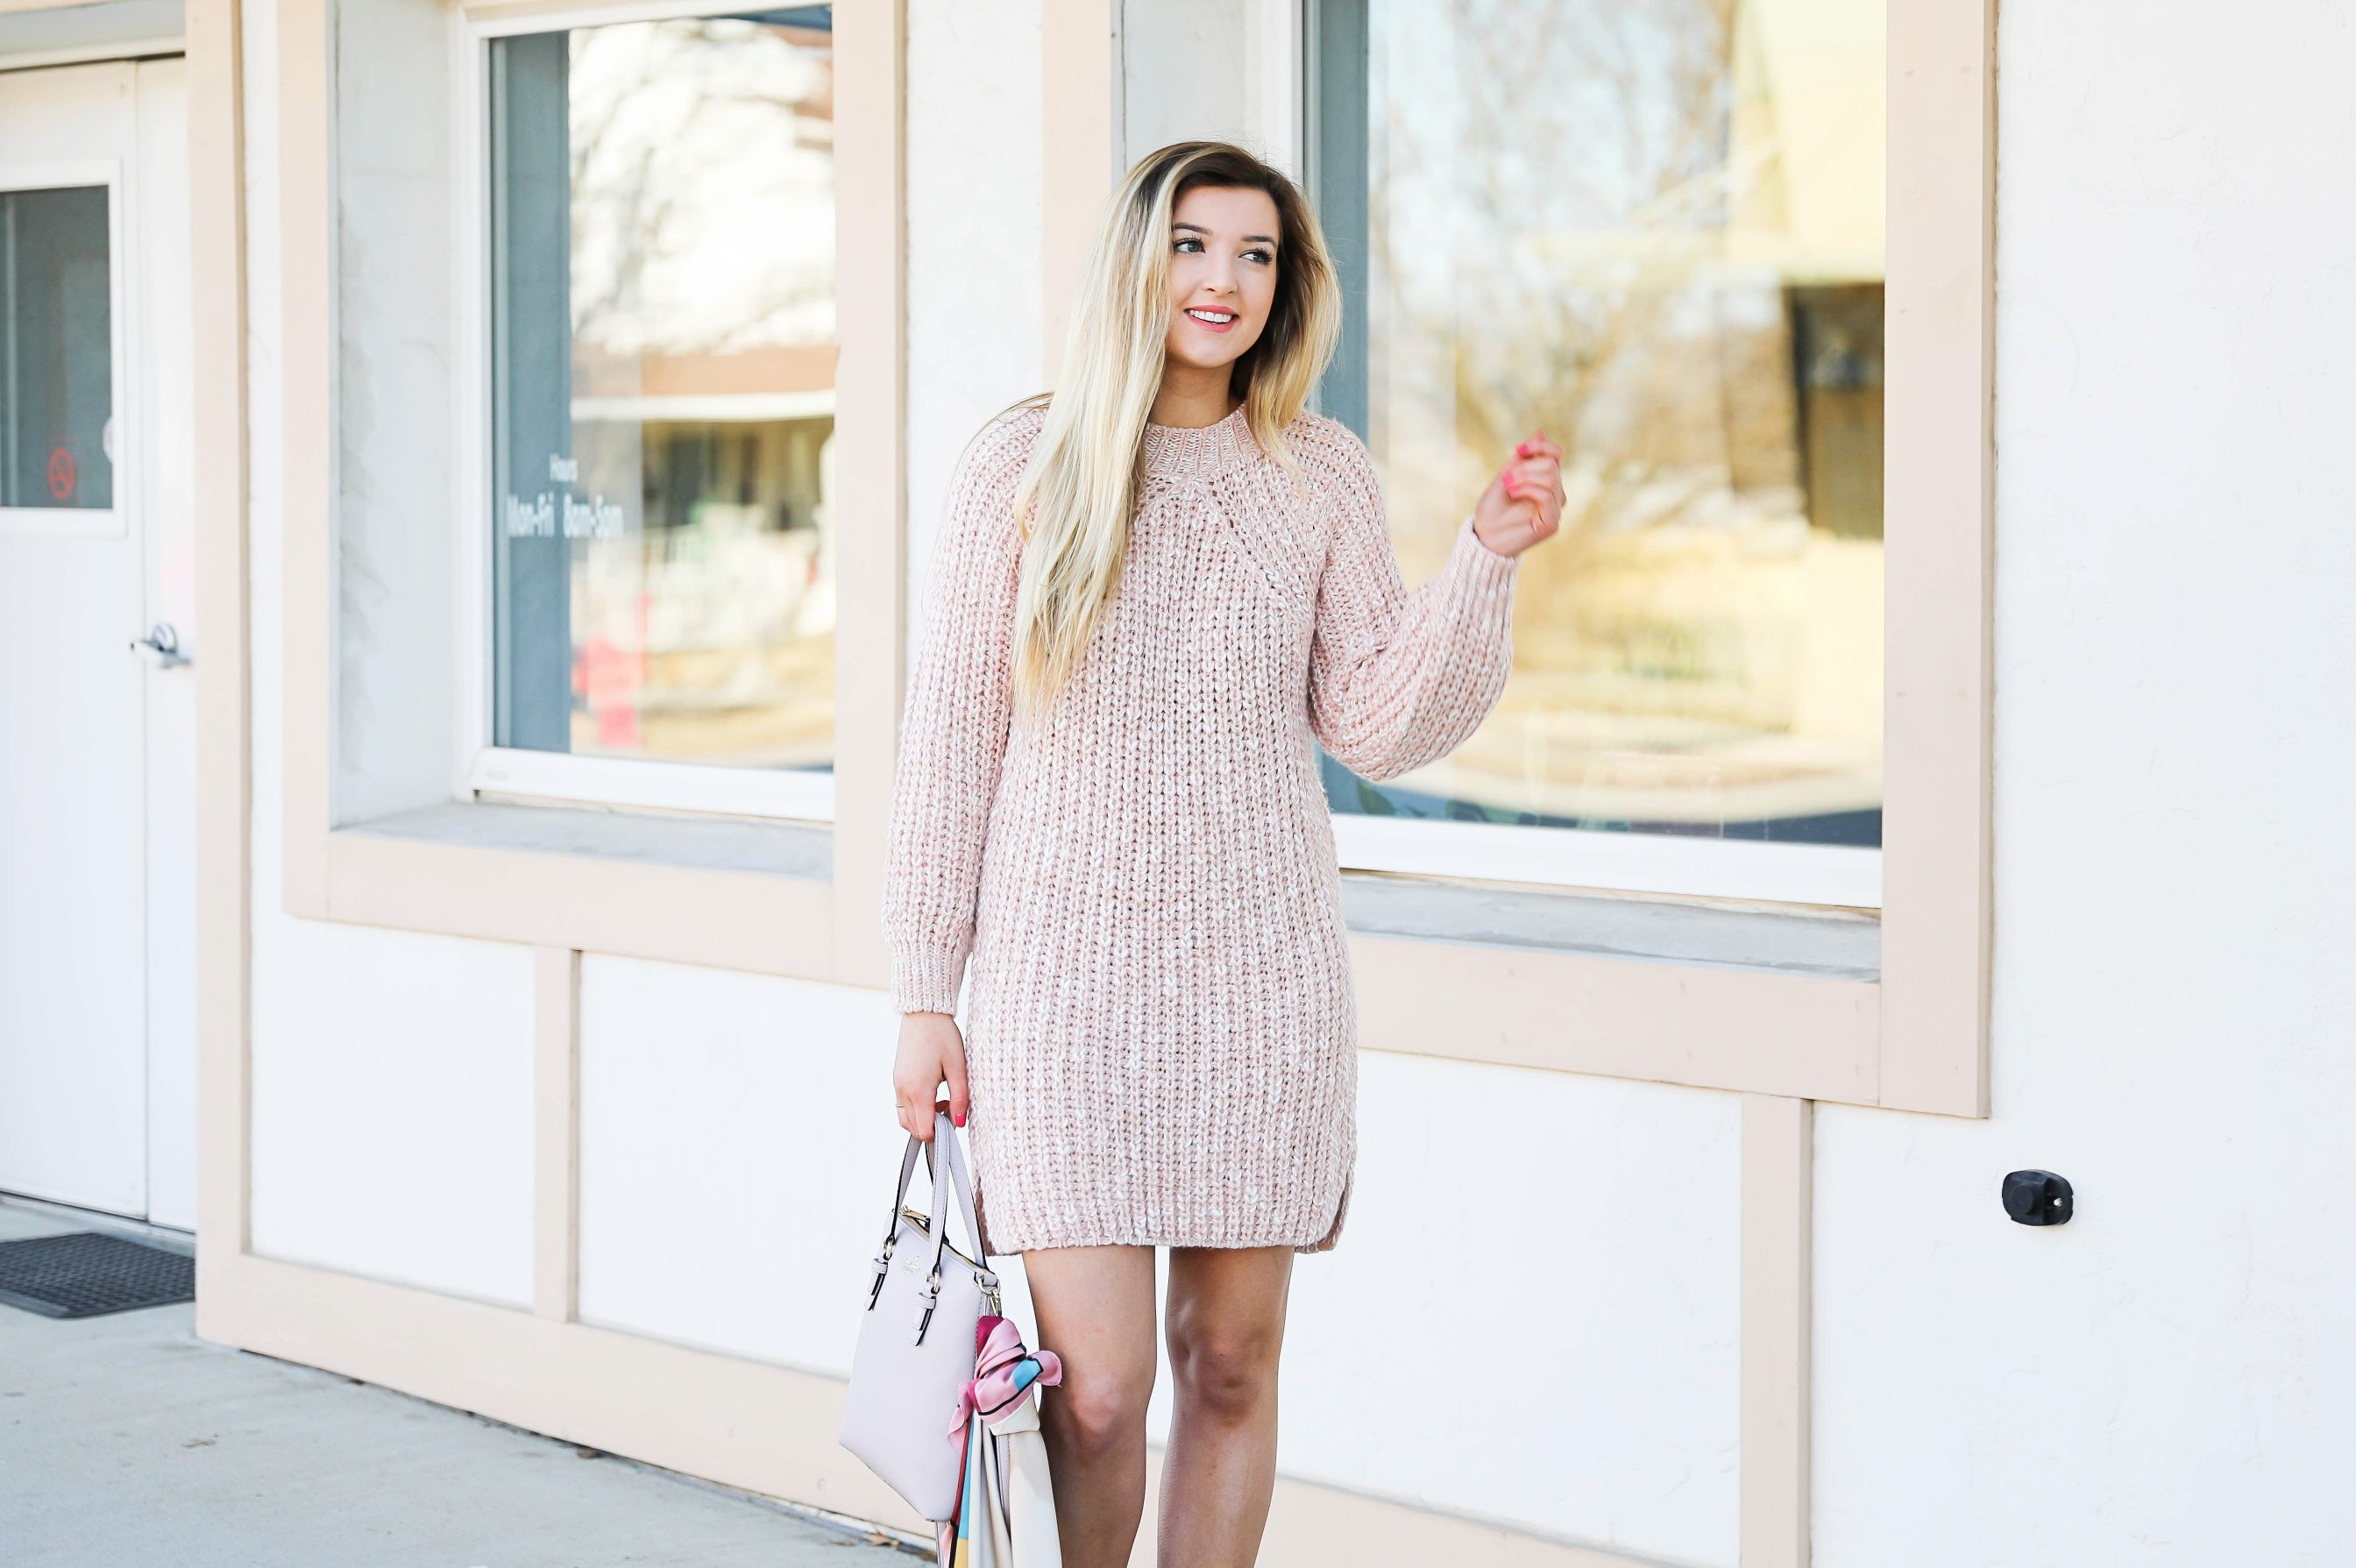 Pink sweater dress with kate spade bag! I love this Kate Spade bag with the pink scarf tied on it! It really adds some cute feminine flair! My new favorite purse! Details on fashion blog daily dose of charm by lauren lindmark